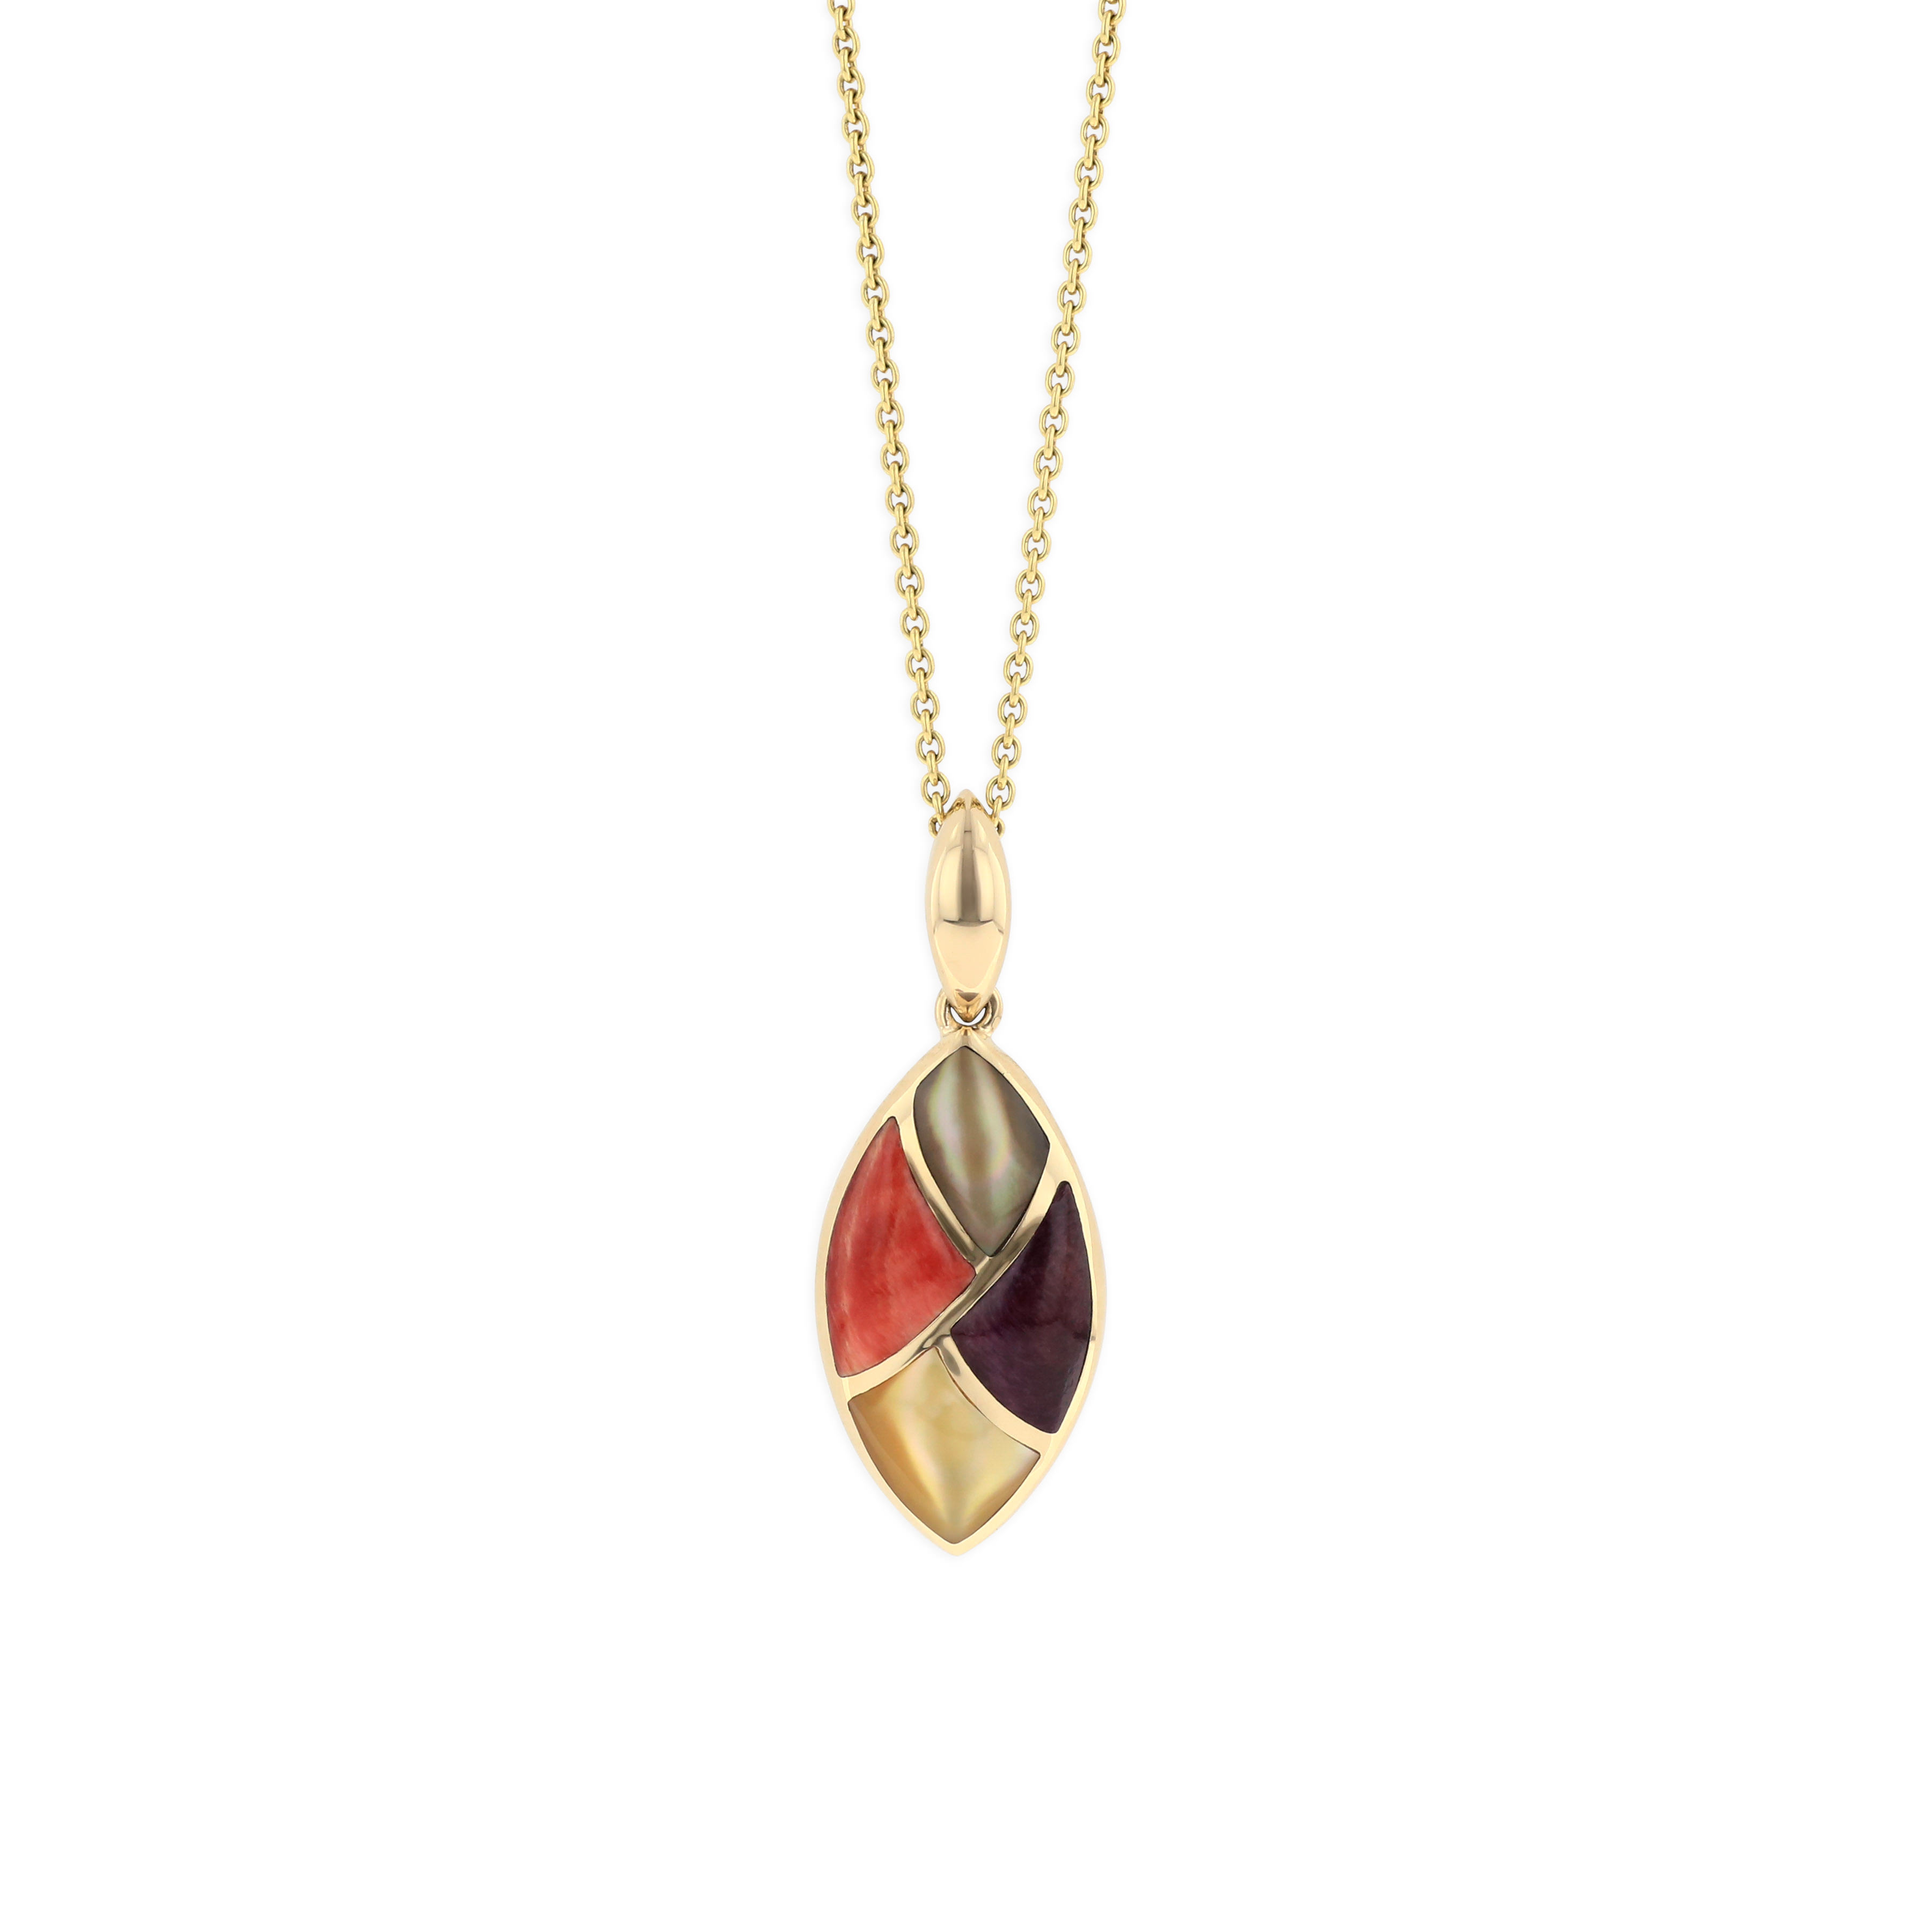 14 KT yellow gold Pendant with inlay